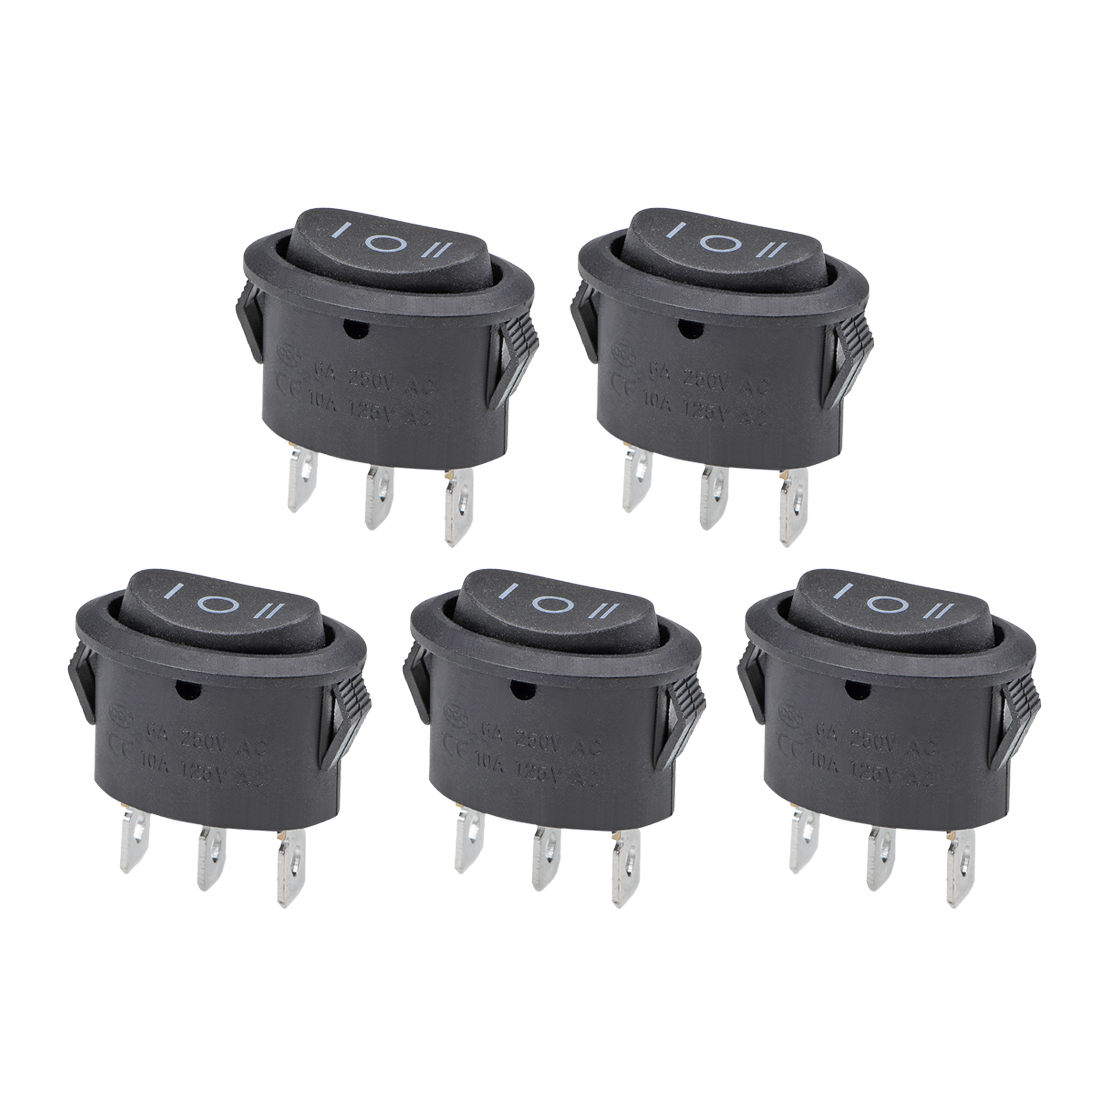 Rocker Switch AC 6A/250V 10A/125V 3 Pin Boat SPDT Toggle Switch ON-OFF-ON 5pcs